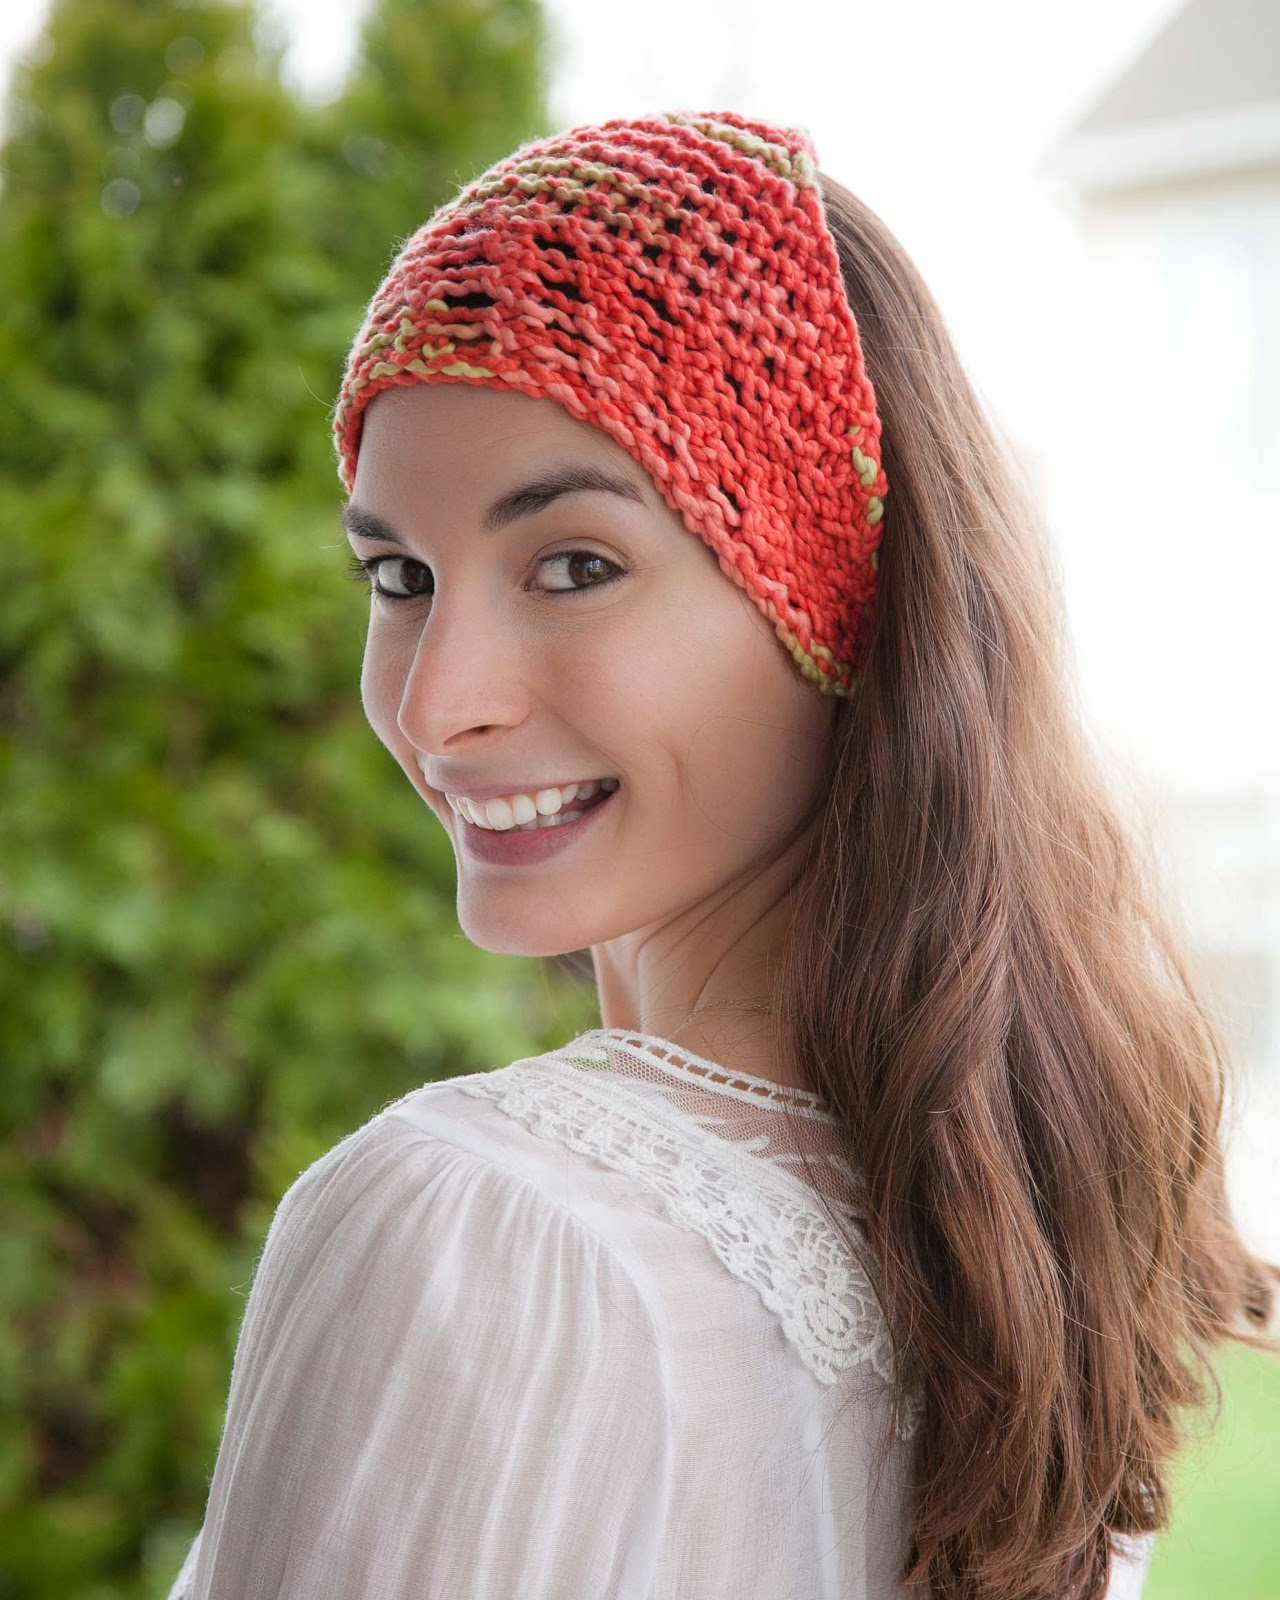 Knitted Head Wrap Pattern Free : Loom Knitting by This Moment is Good!: LOOM KNIT HEAD WRAP/BANDANNA